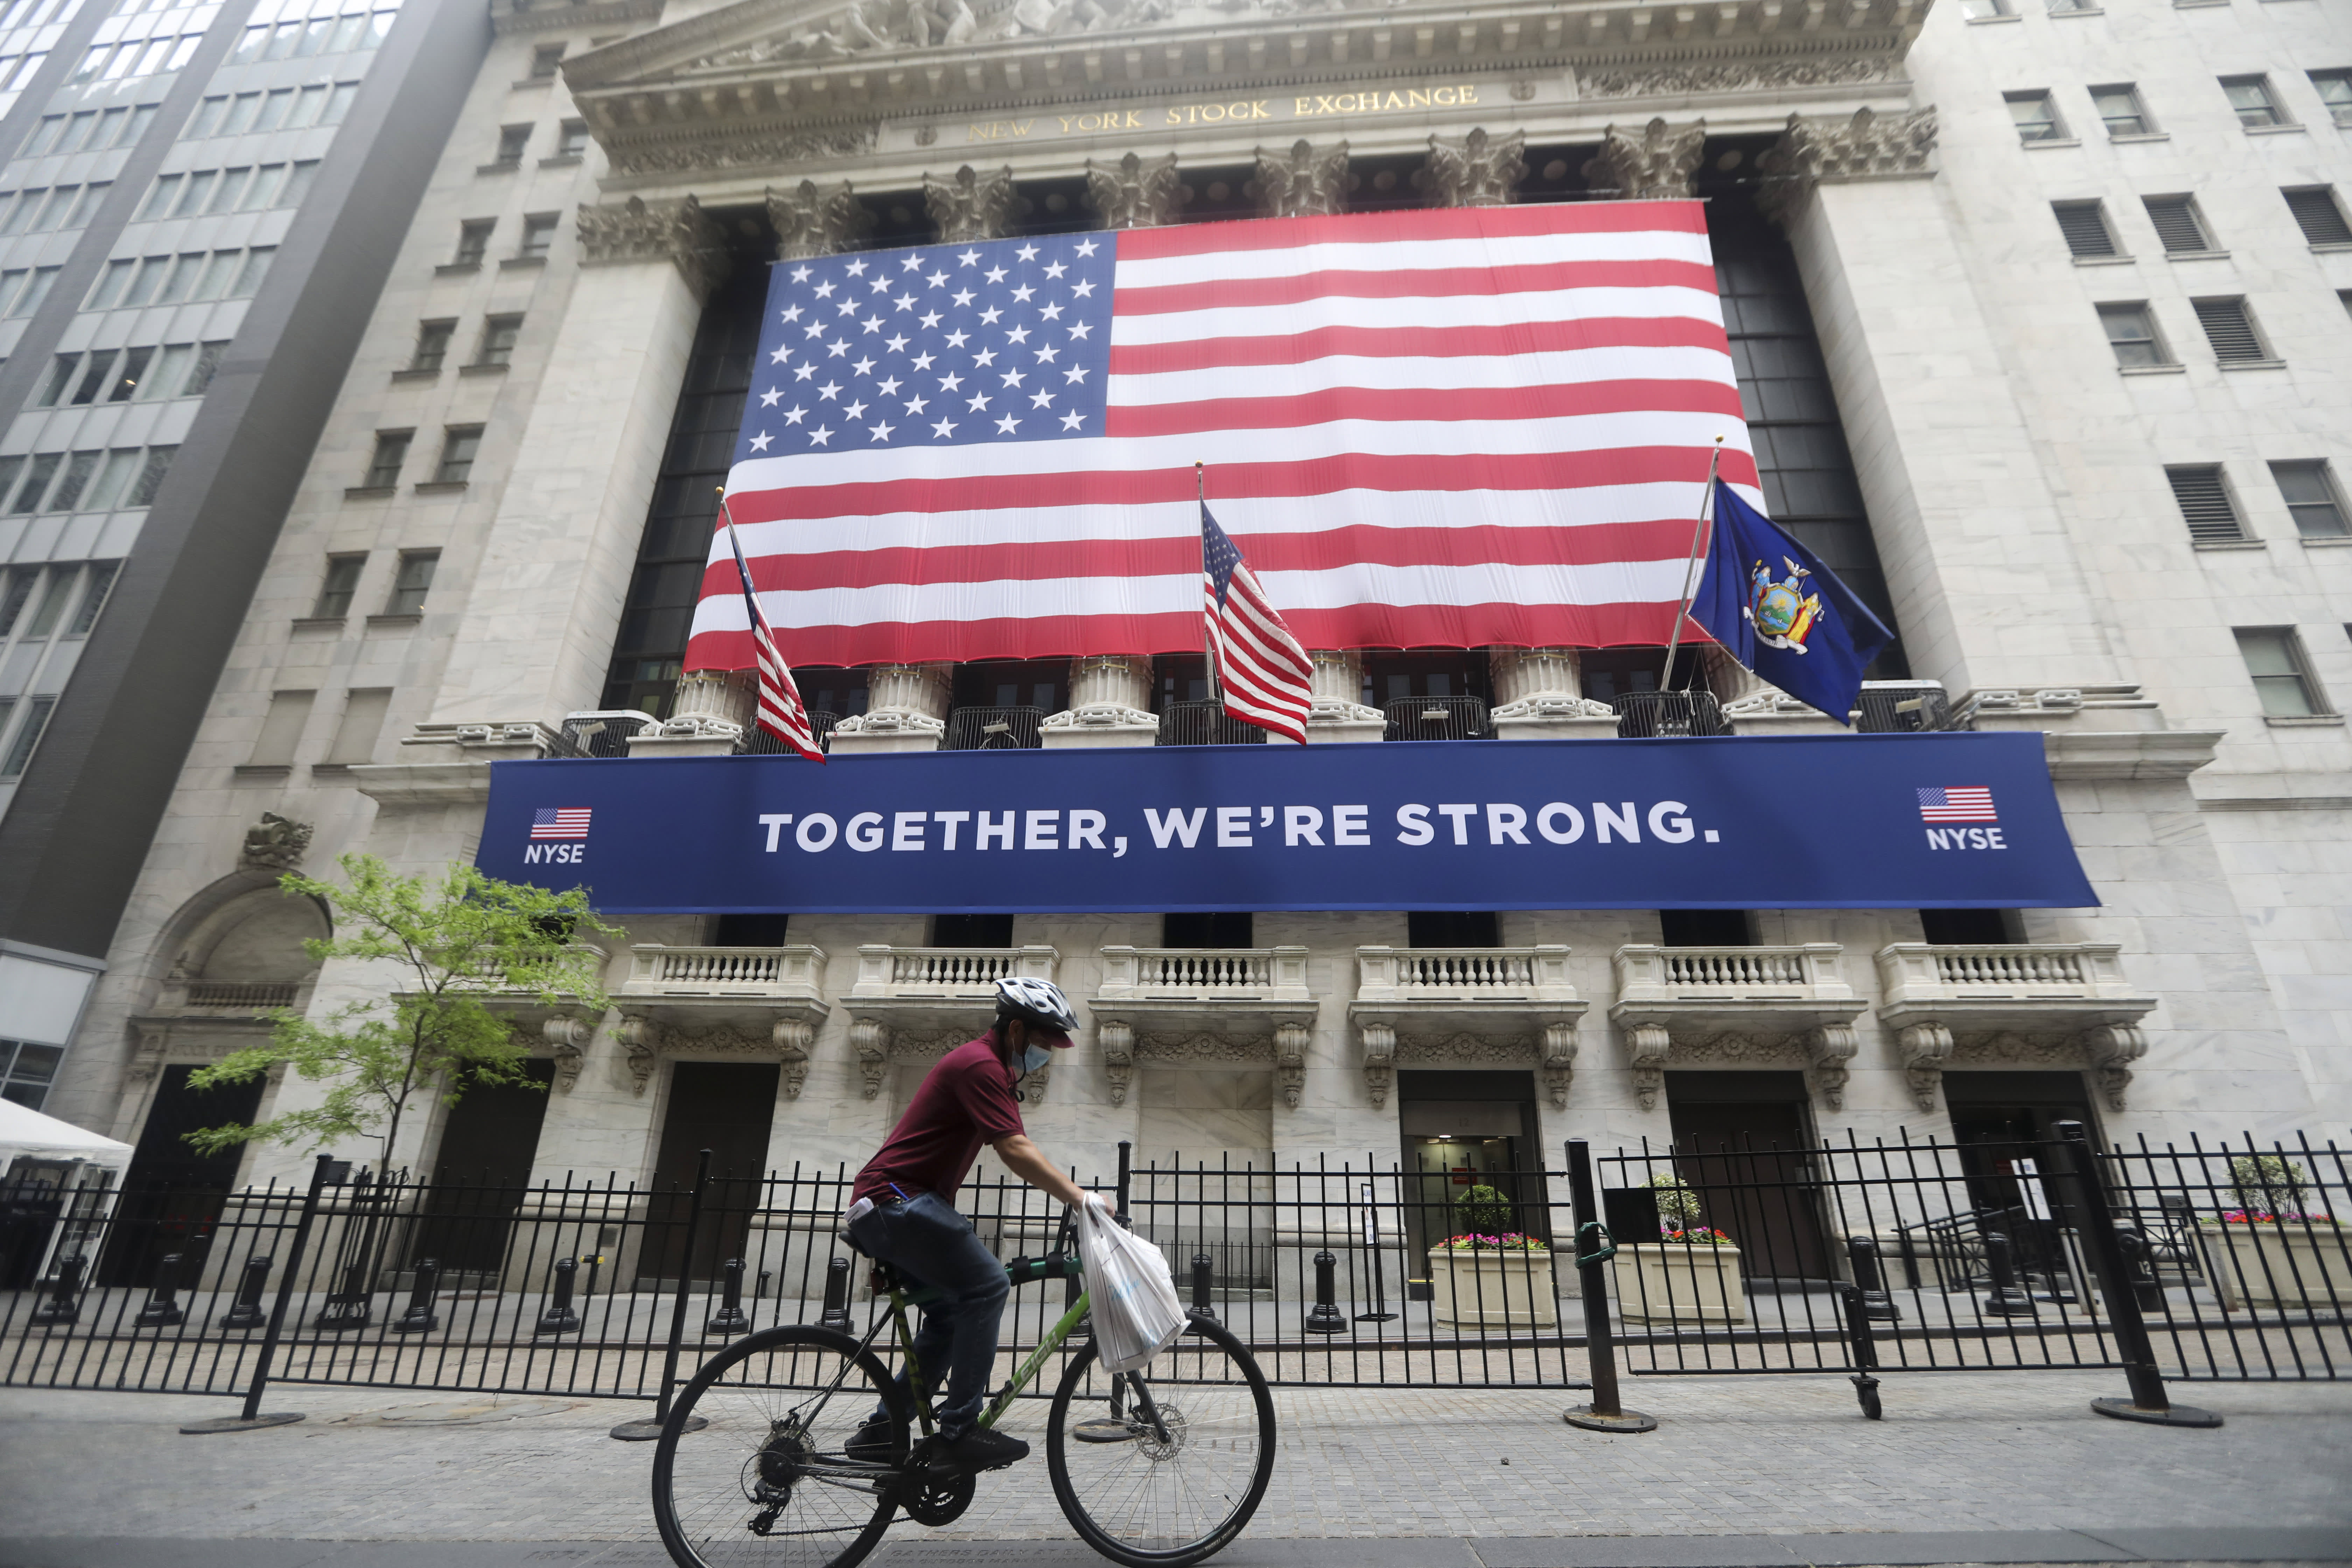 Stock market today: Stocks extend losses amid record GDP plunge, with the Dow dropping 500 points 2